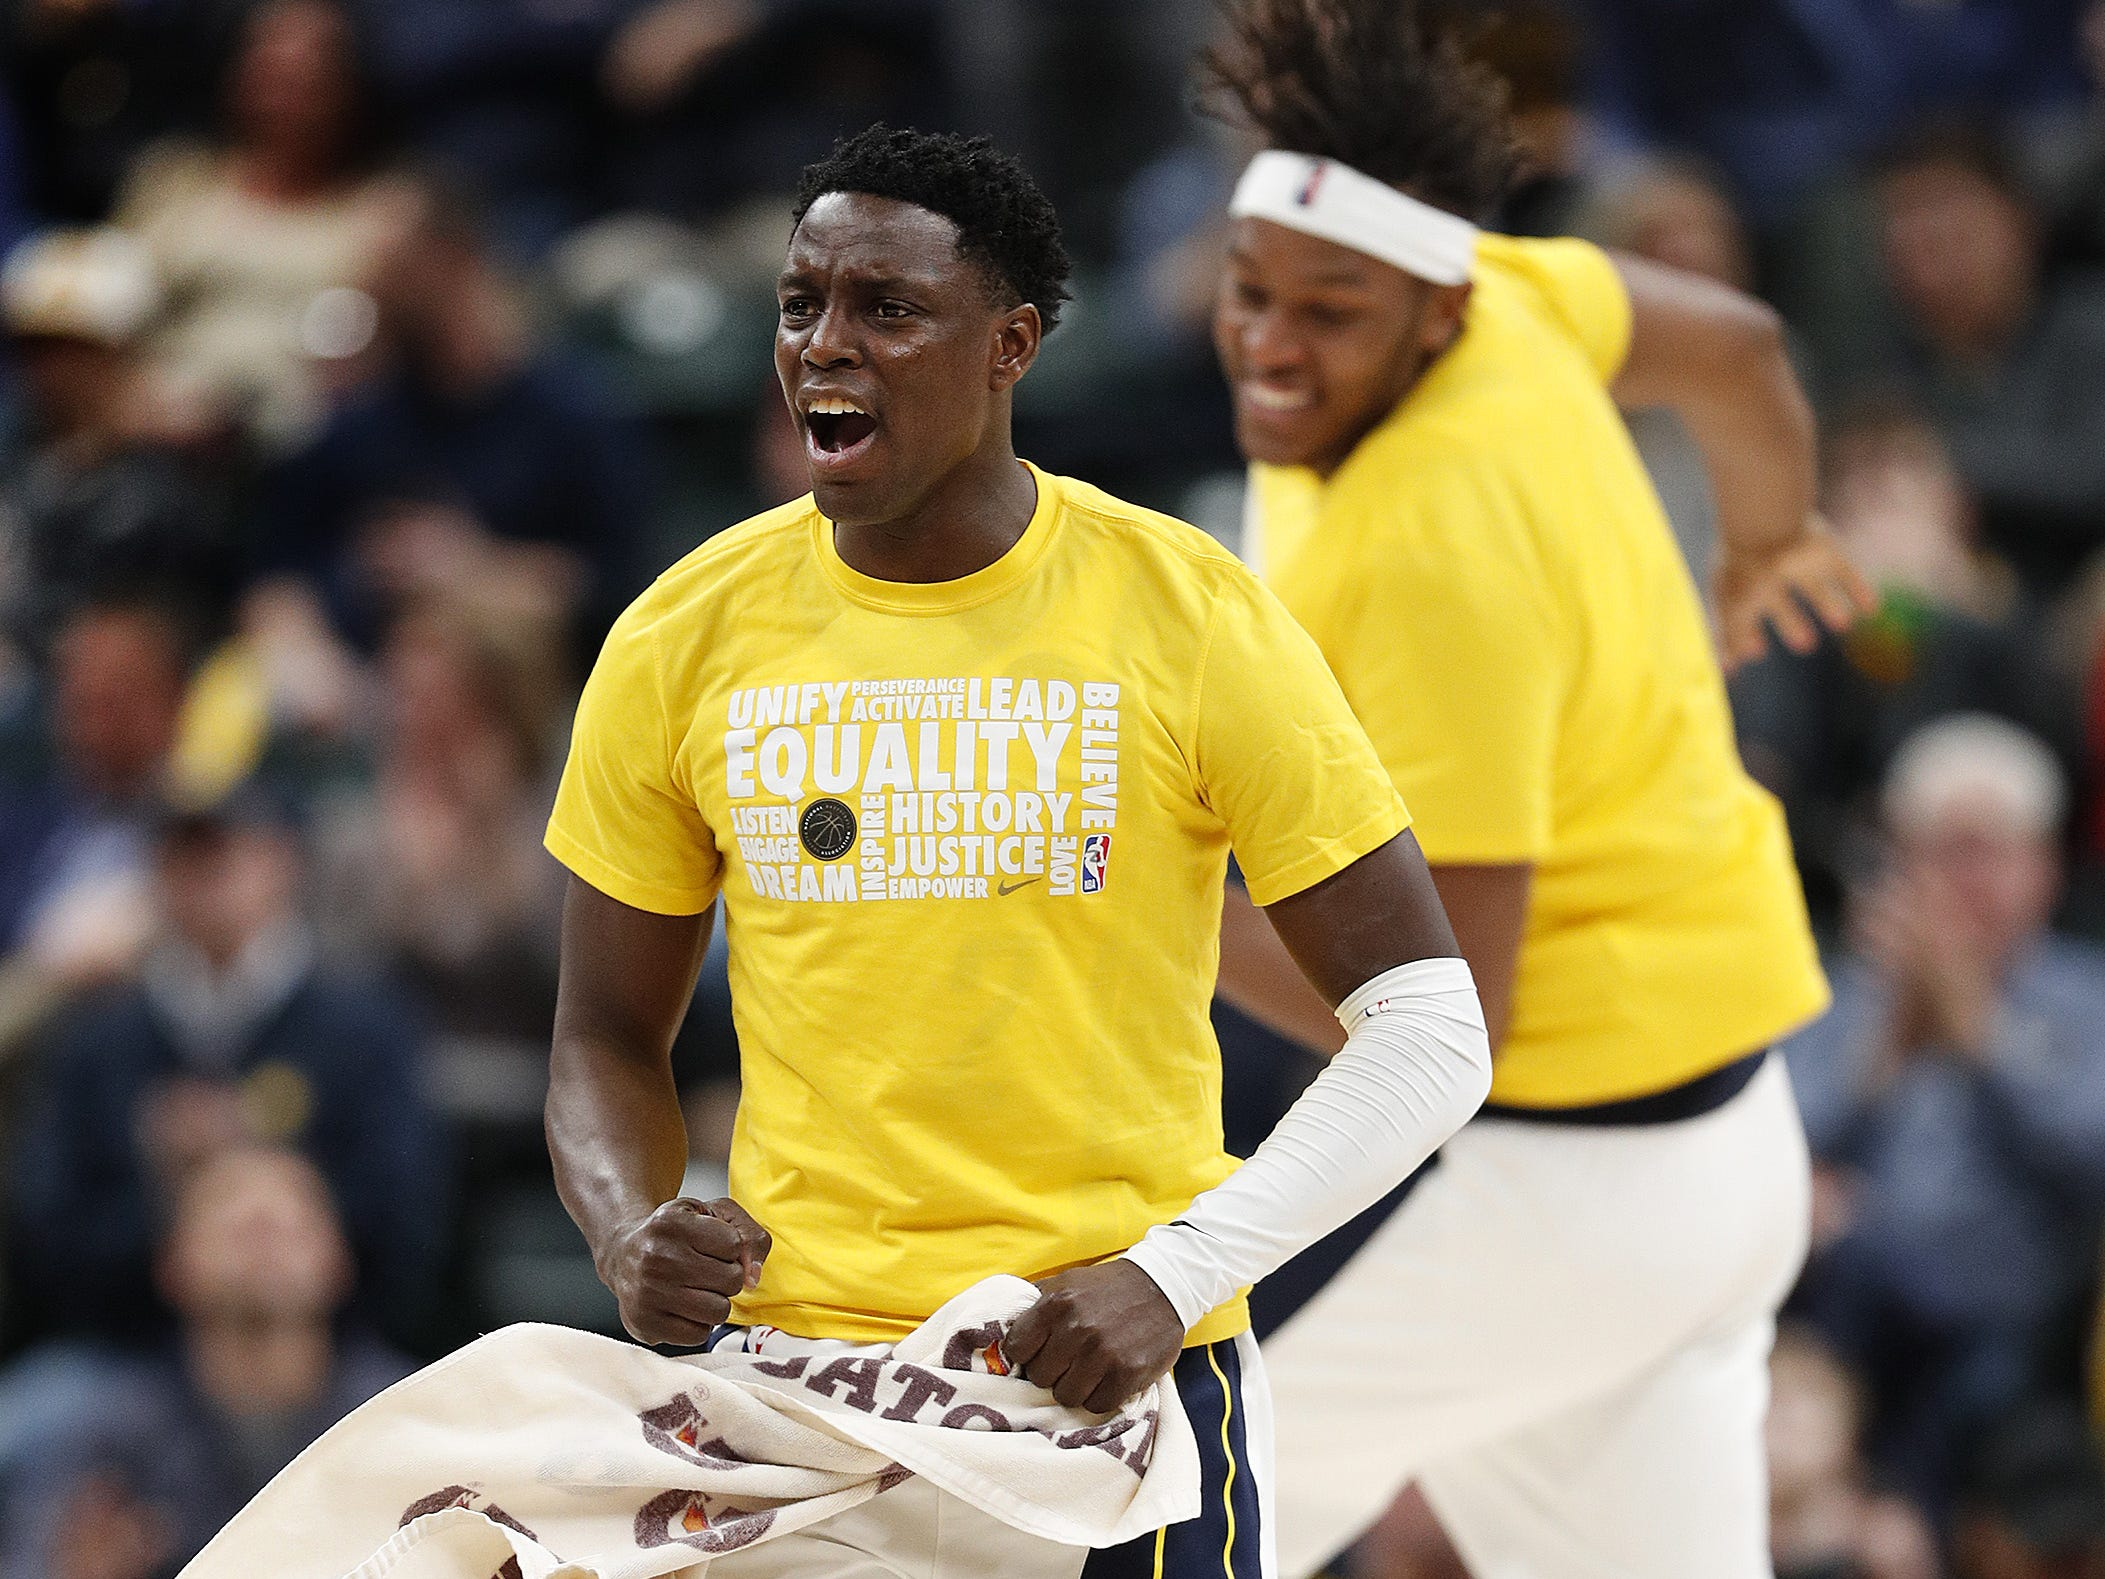 Indiana Pacers guard Darren Collison (2) jumps off the bench to celebrate with his teammates late in the second half of their game at Bankers Life Fieldhouse on Tuesday, Feb. 5, 2019.